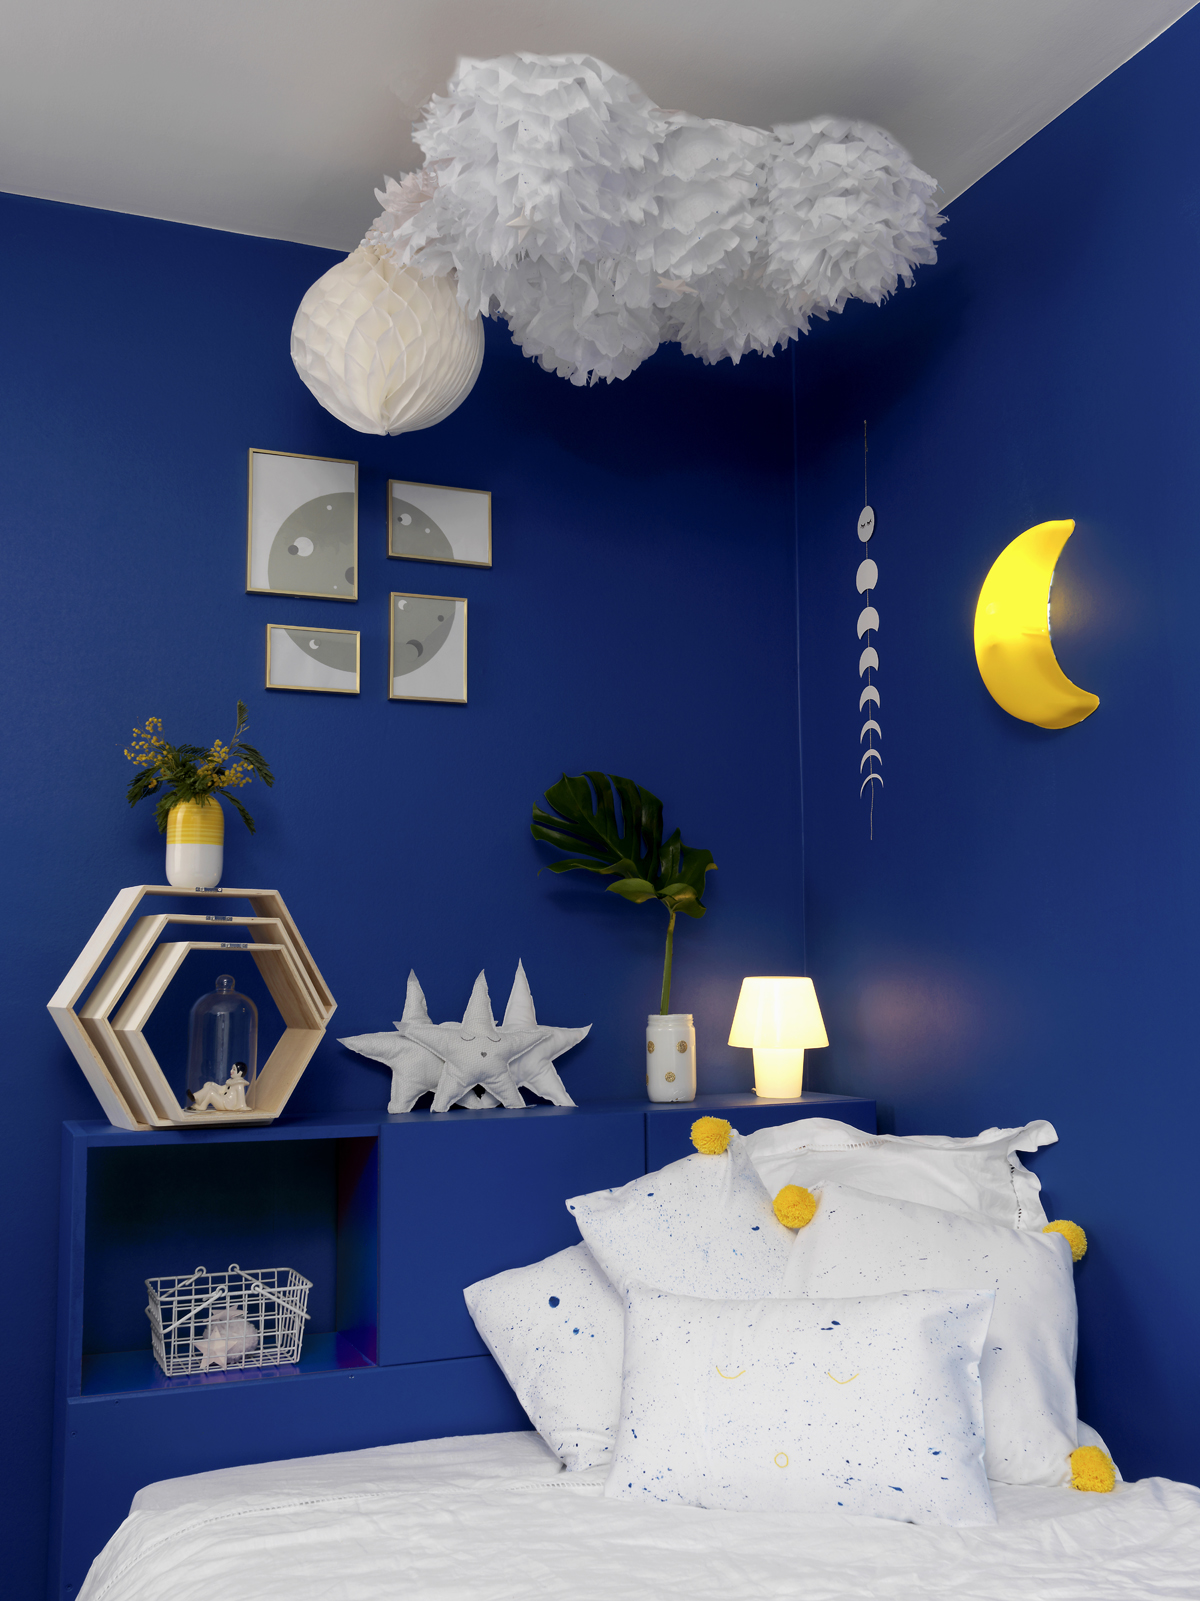 diy red corer une chambre d 39 enfant sur le th me de la lune sp4nk blog. Black Bedroom Furniture Sets. Home Design Ideas